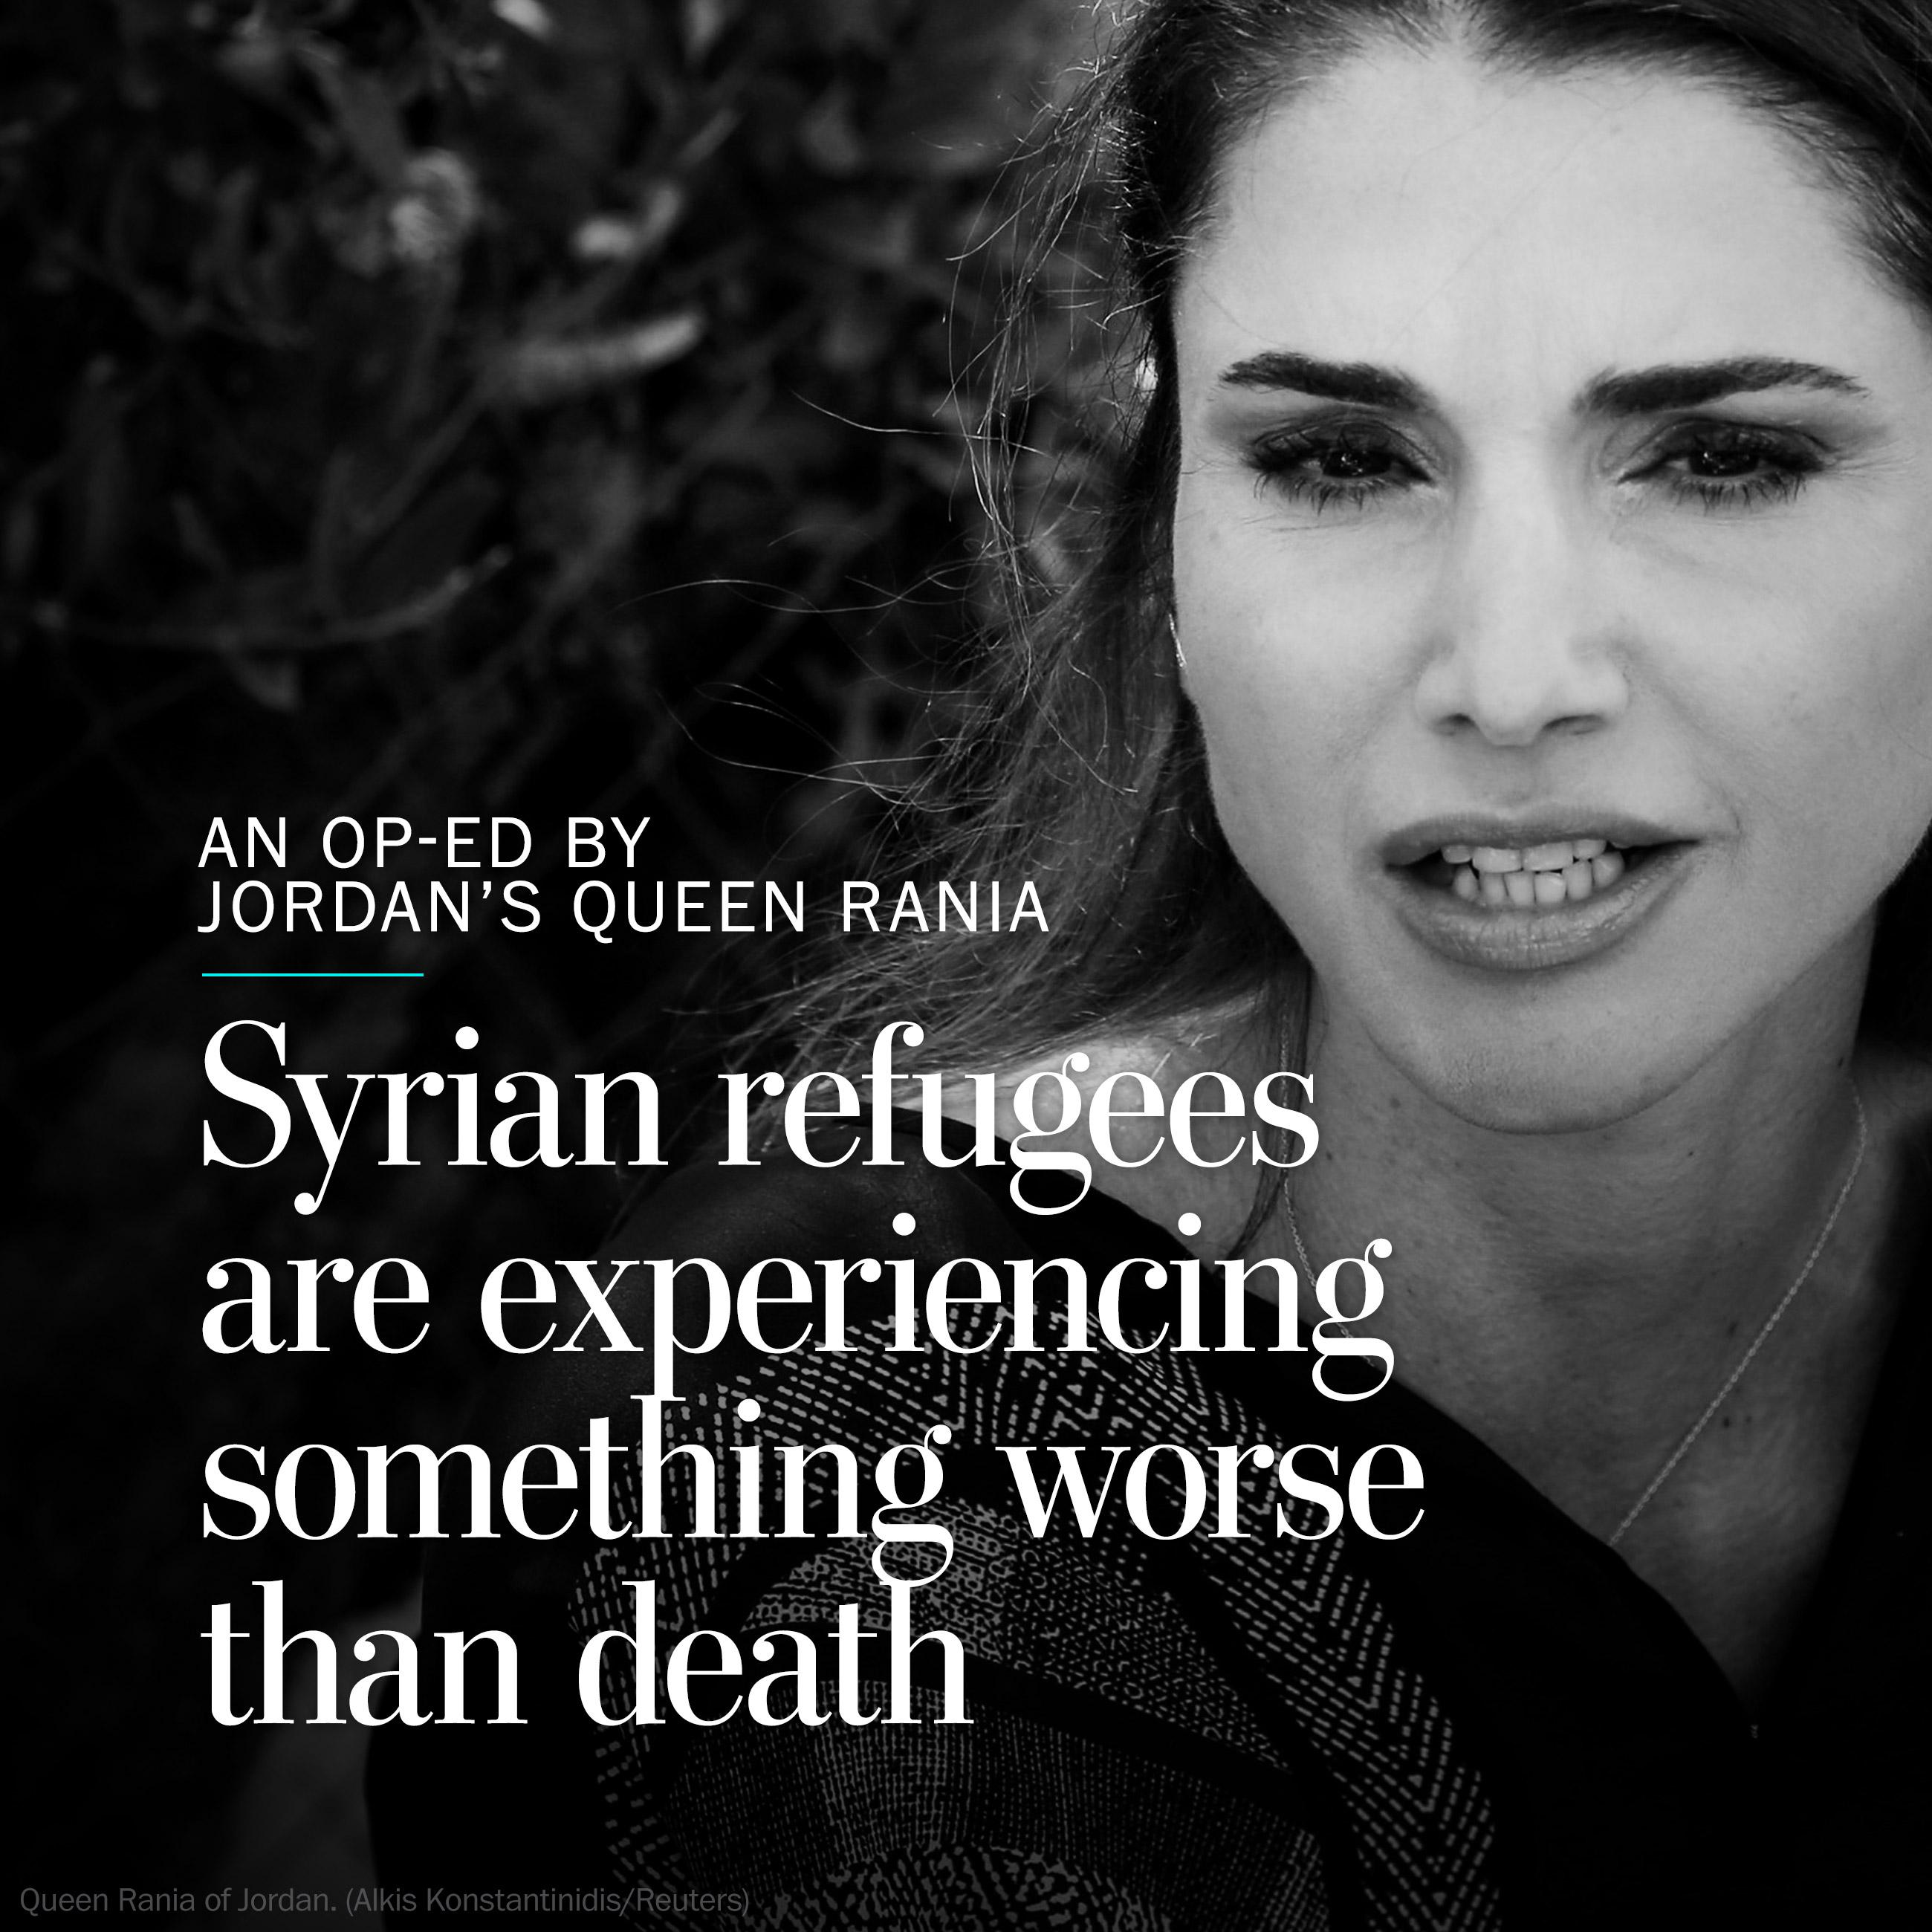 Queen Rania: The Syrian refugees I met are experiencing something worse than death